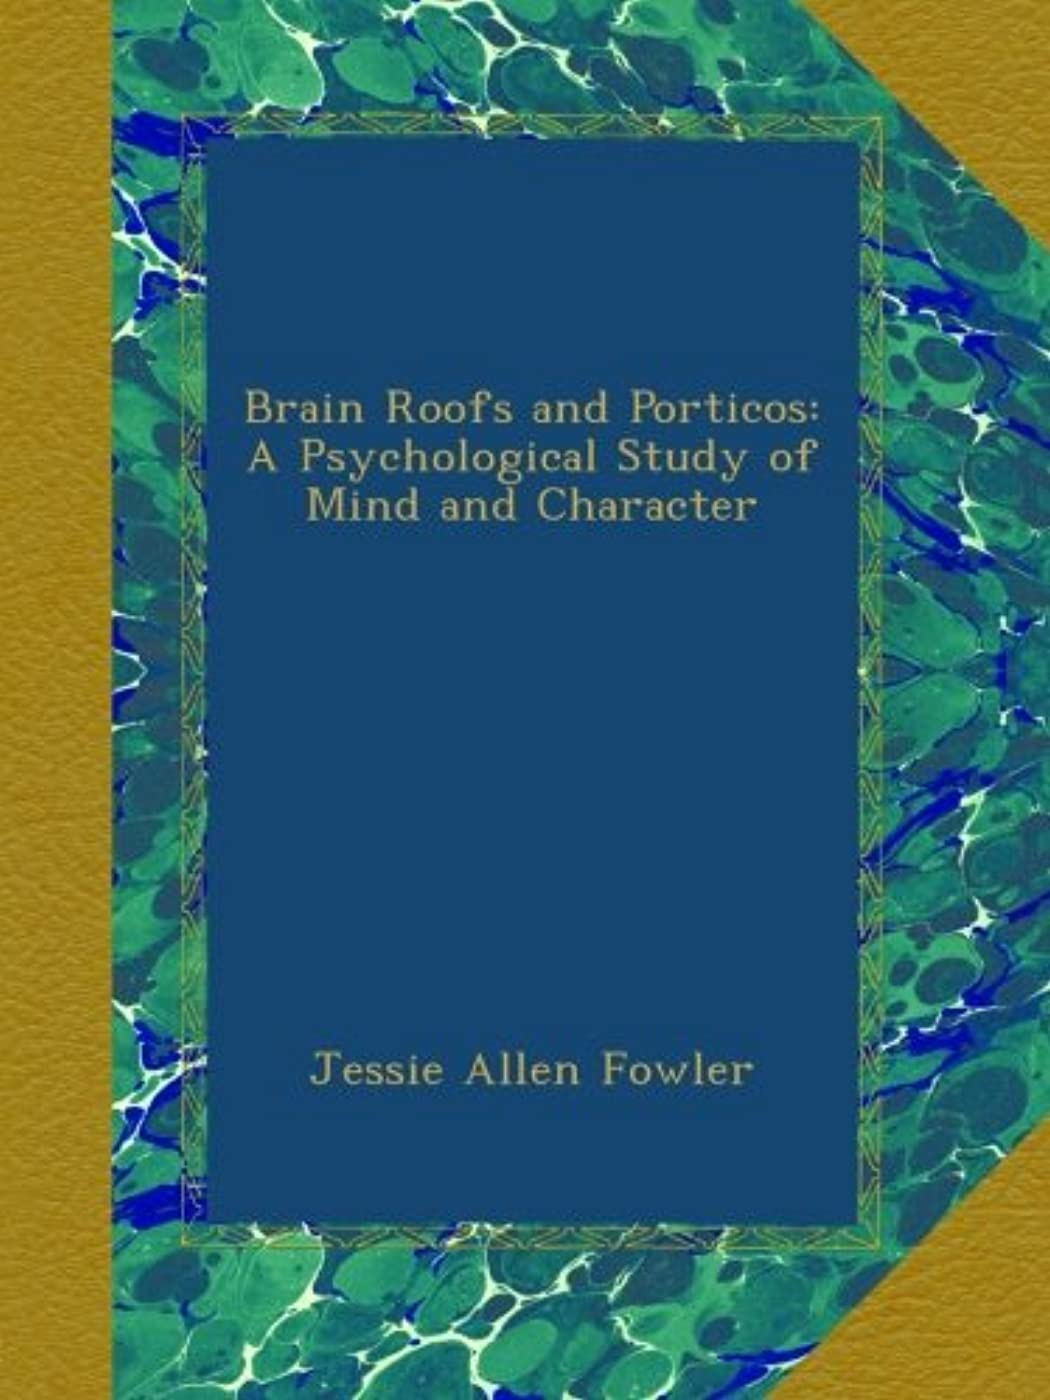 良さ嬉しいですホイールBrain Roofs and Porticos: A Psychological Study of Mind and Character